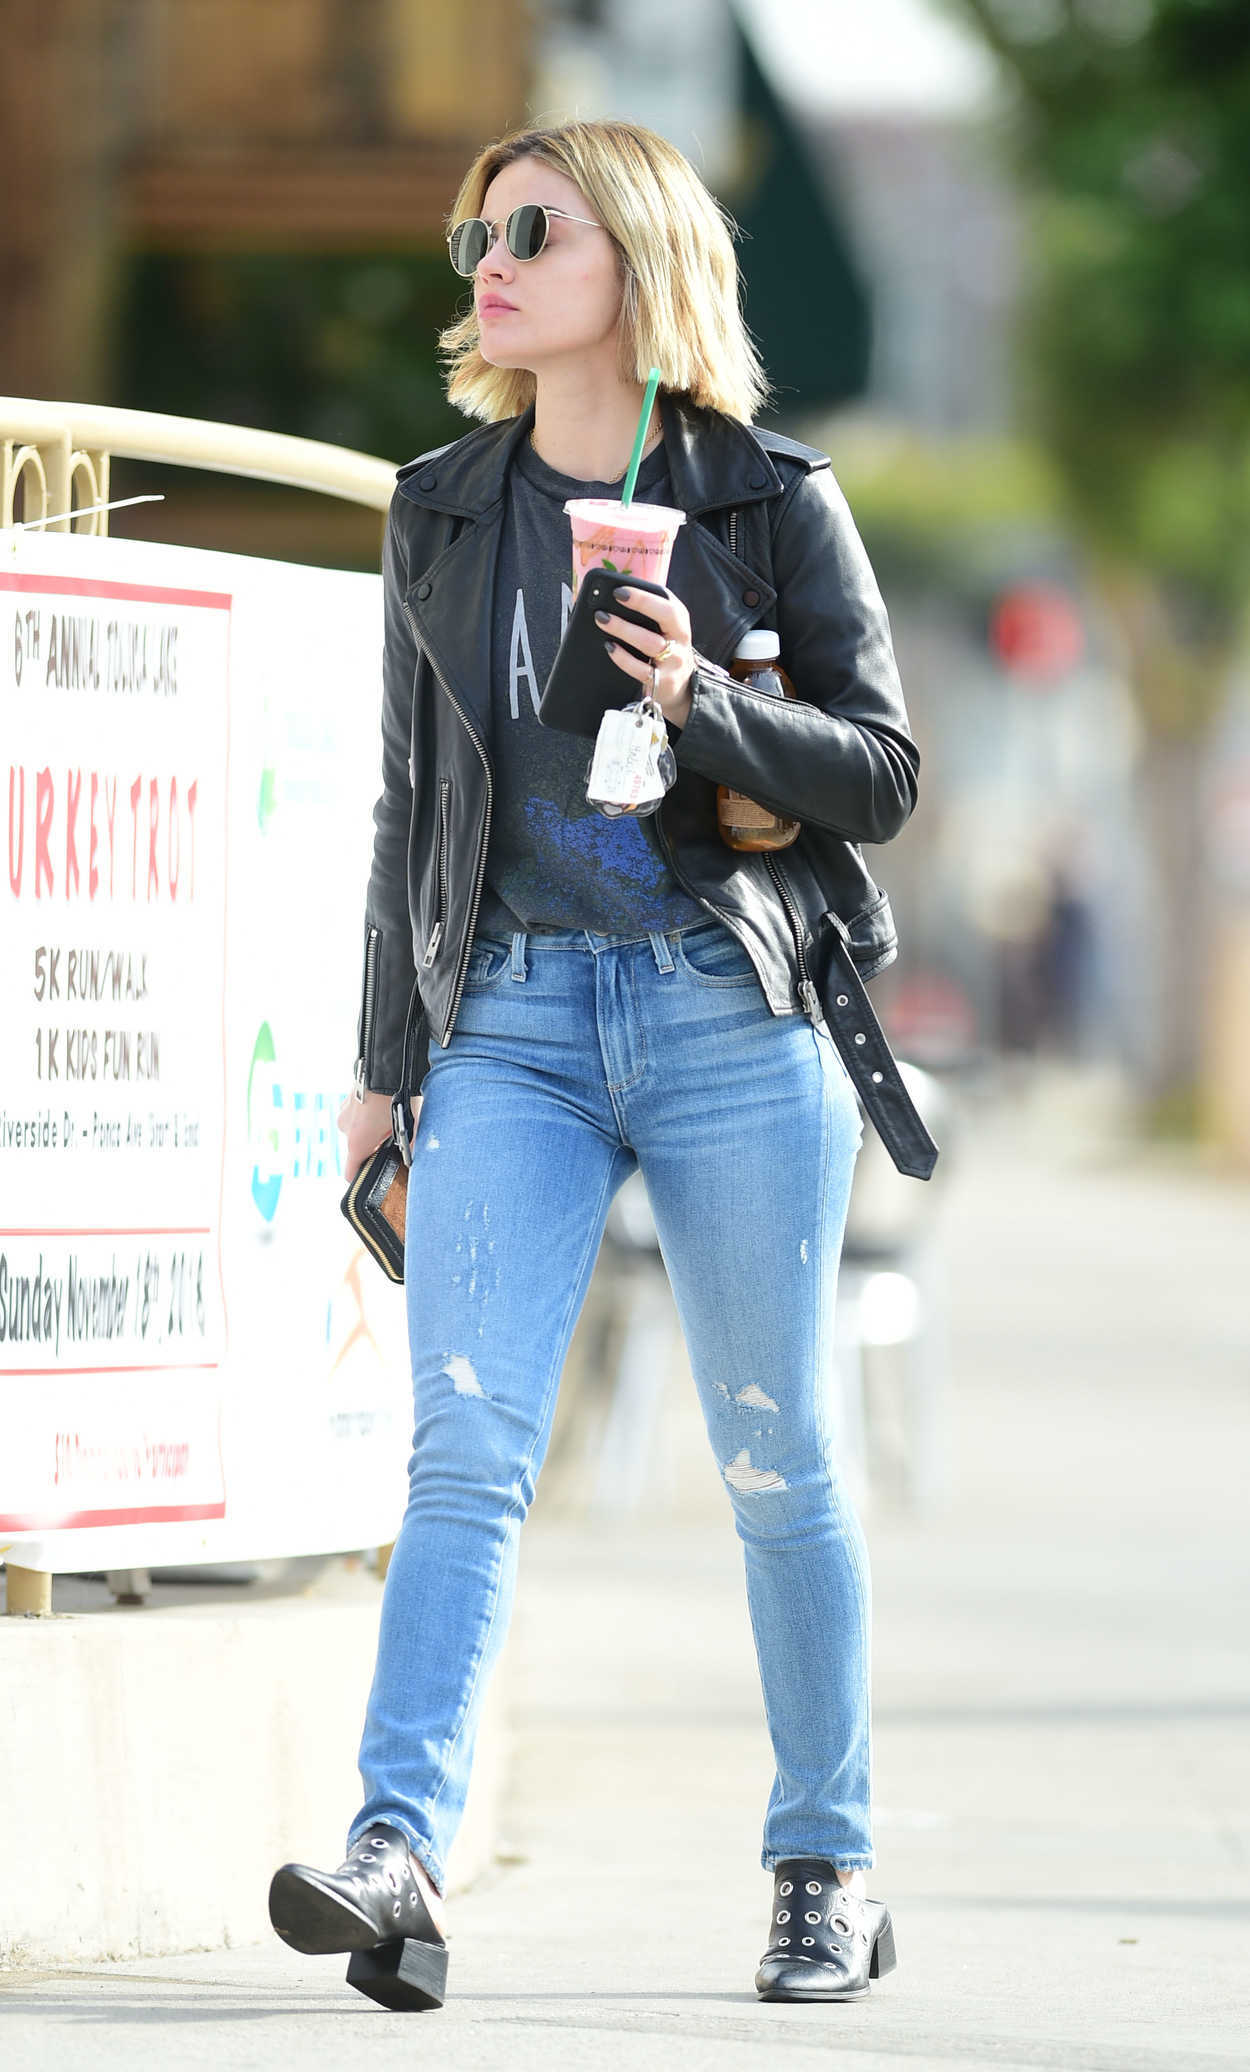 Lucy Hale In A Blue Ripped Jeans Was Seen Out In Los